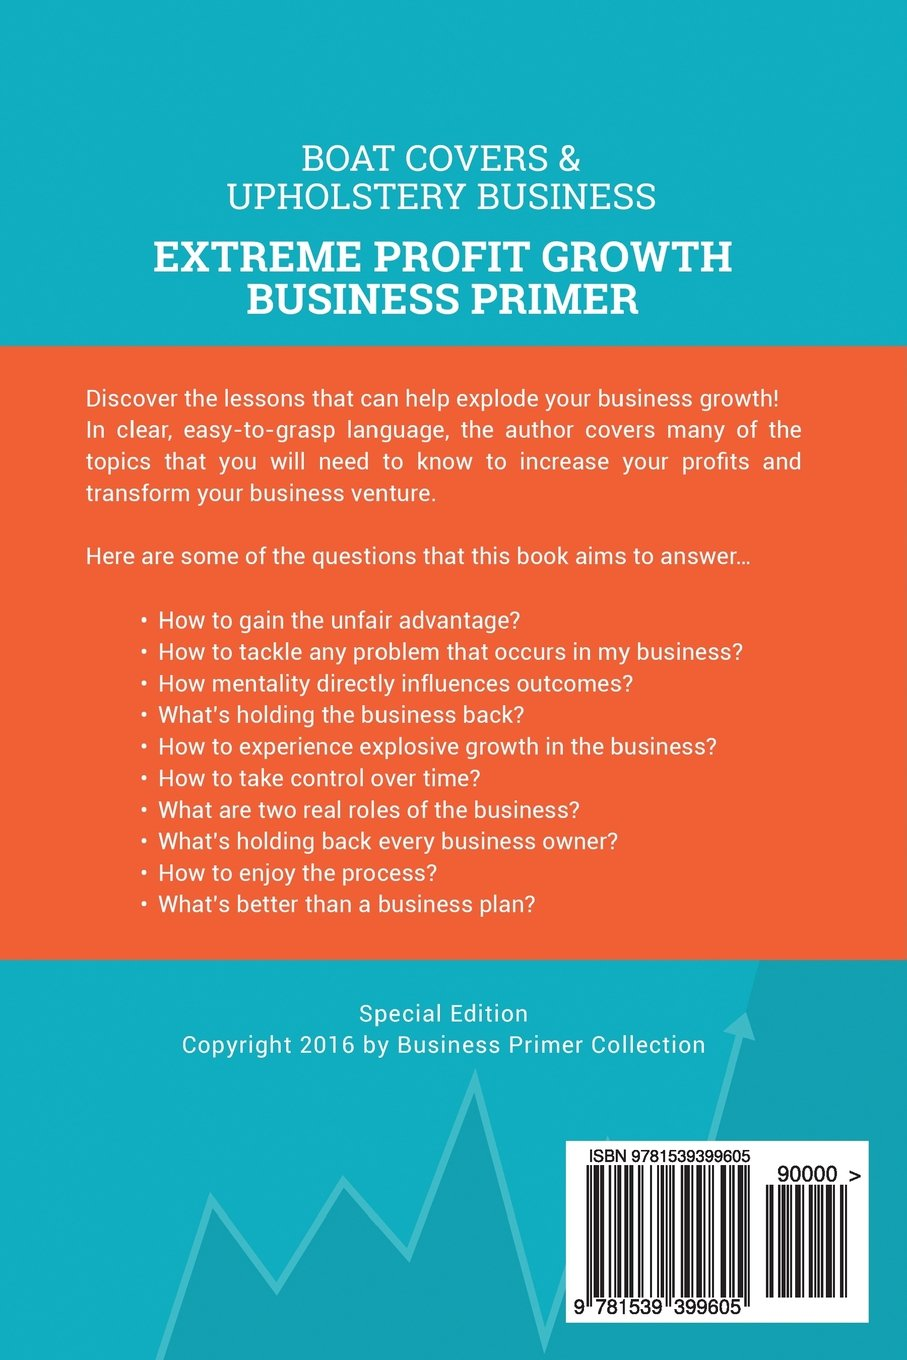 Boat Covers & Upholstery Business: Extreme Profit Growth Business ...